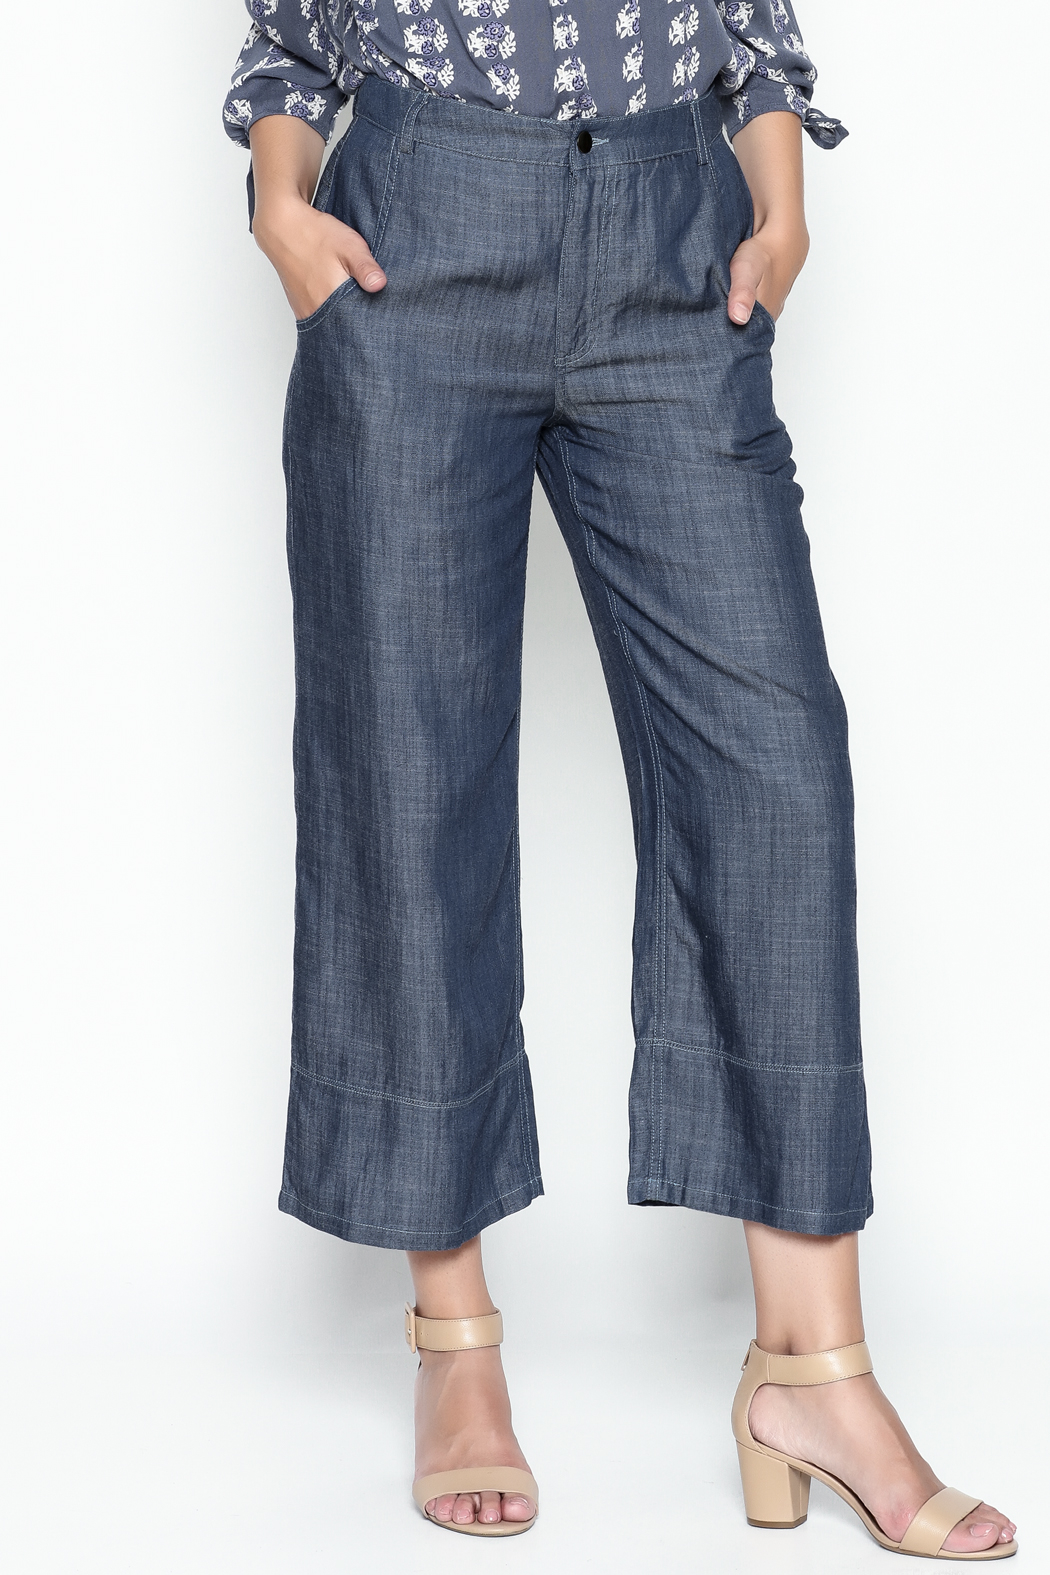 Current Air Tencel Culotte Pants - Main Image